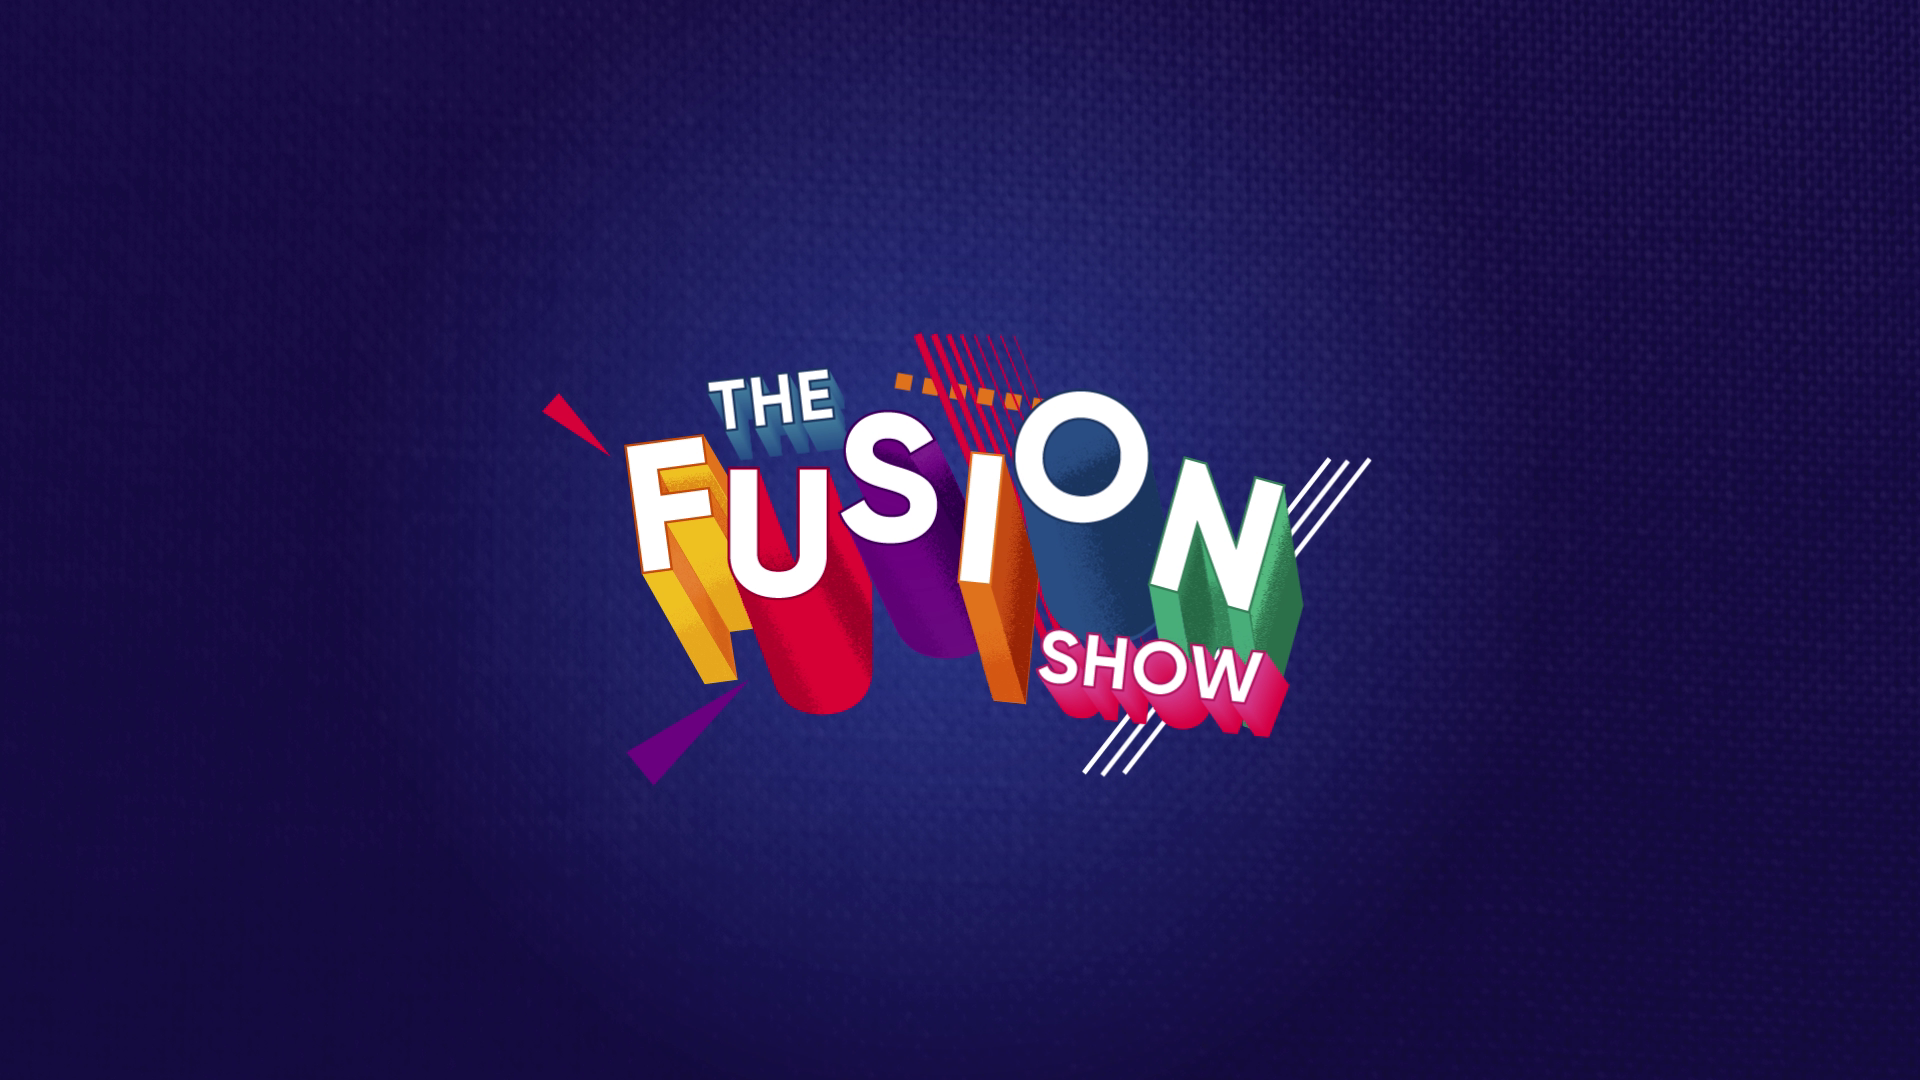 The Fusion Show! #sidmfusion20